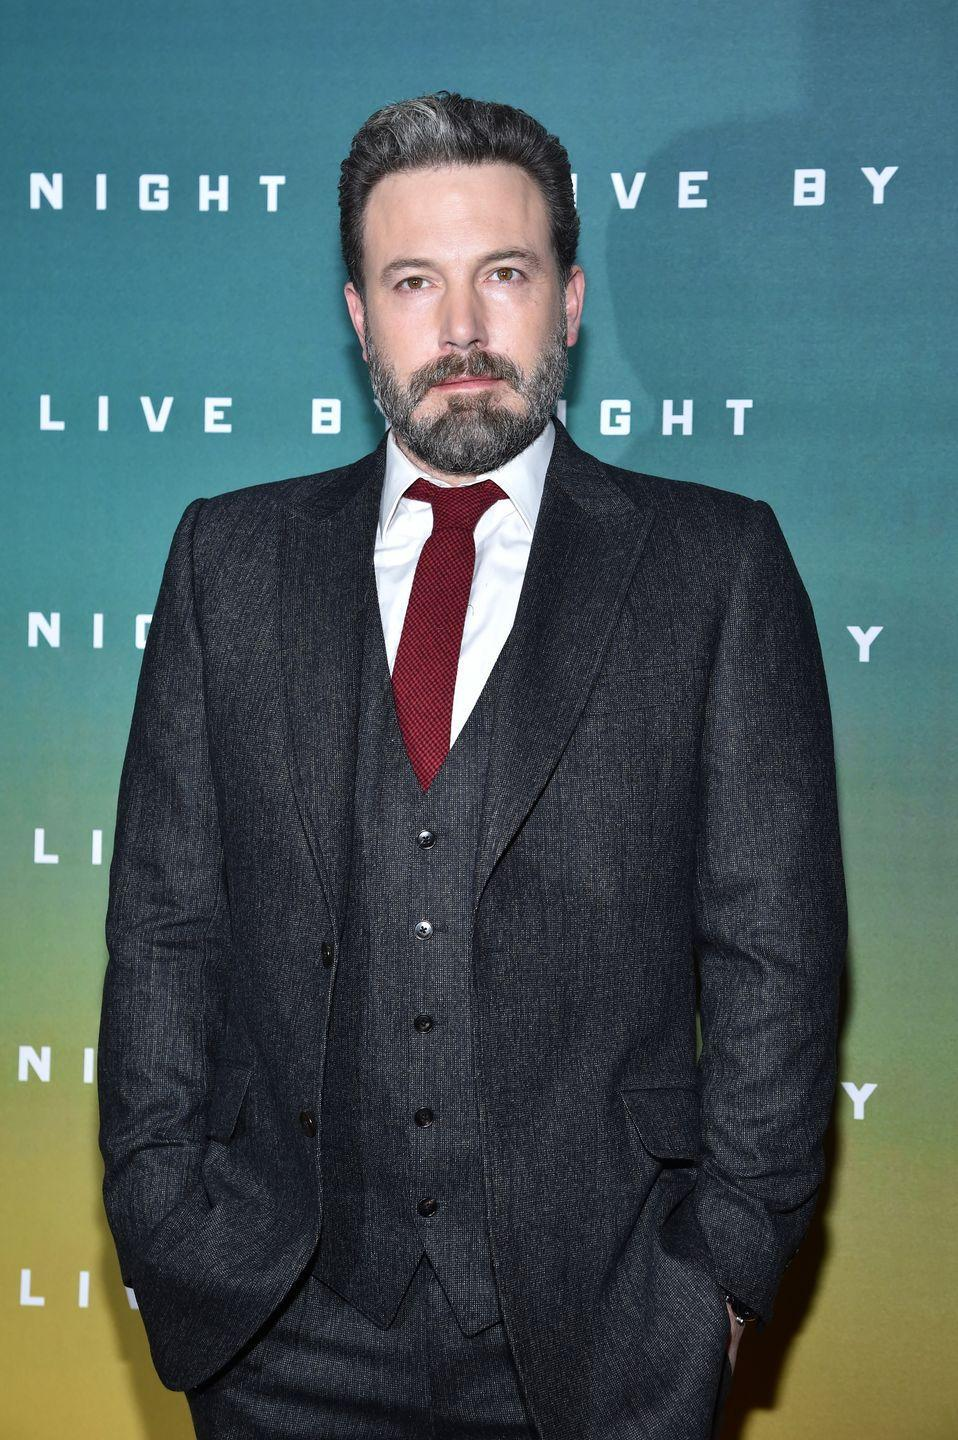 """<p>In a TimesTalk interview Affleck <a href=""""http://www.harpersbazaar.com/celebrity/latest/news/a19408/ben-affleck-talks-gigli-jennifer-lopez/"""" rel=""""nofollow noopener"""" target=""""_blank"""" data-ylk=""""slk:revealed"""" class=""""link rapid-noclick-resp"""">revealed</a>, """"It could have been a bad movie no one cared about. Angelina Jolie had a bad movie that year and no one cared. But it was because I was dating Jennifer Lopez that made it a big f*cking deal. So not only was it just a bad movie, but 'they dated each other.'""""</p>"""